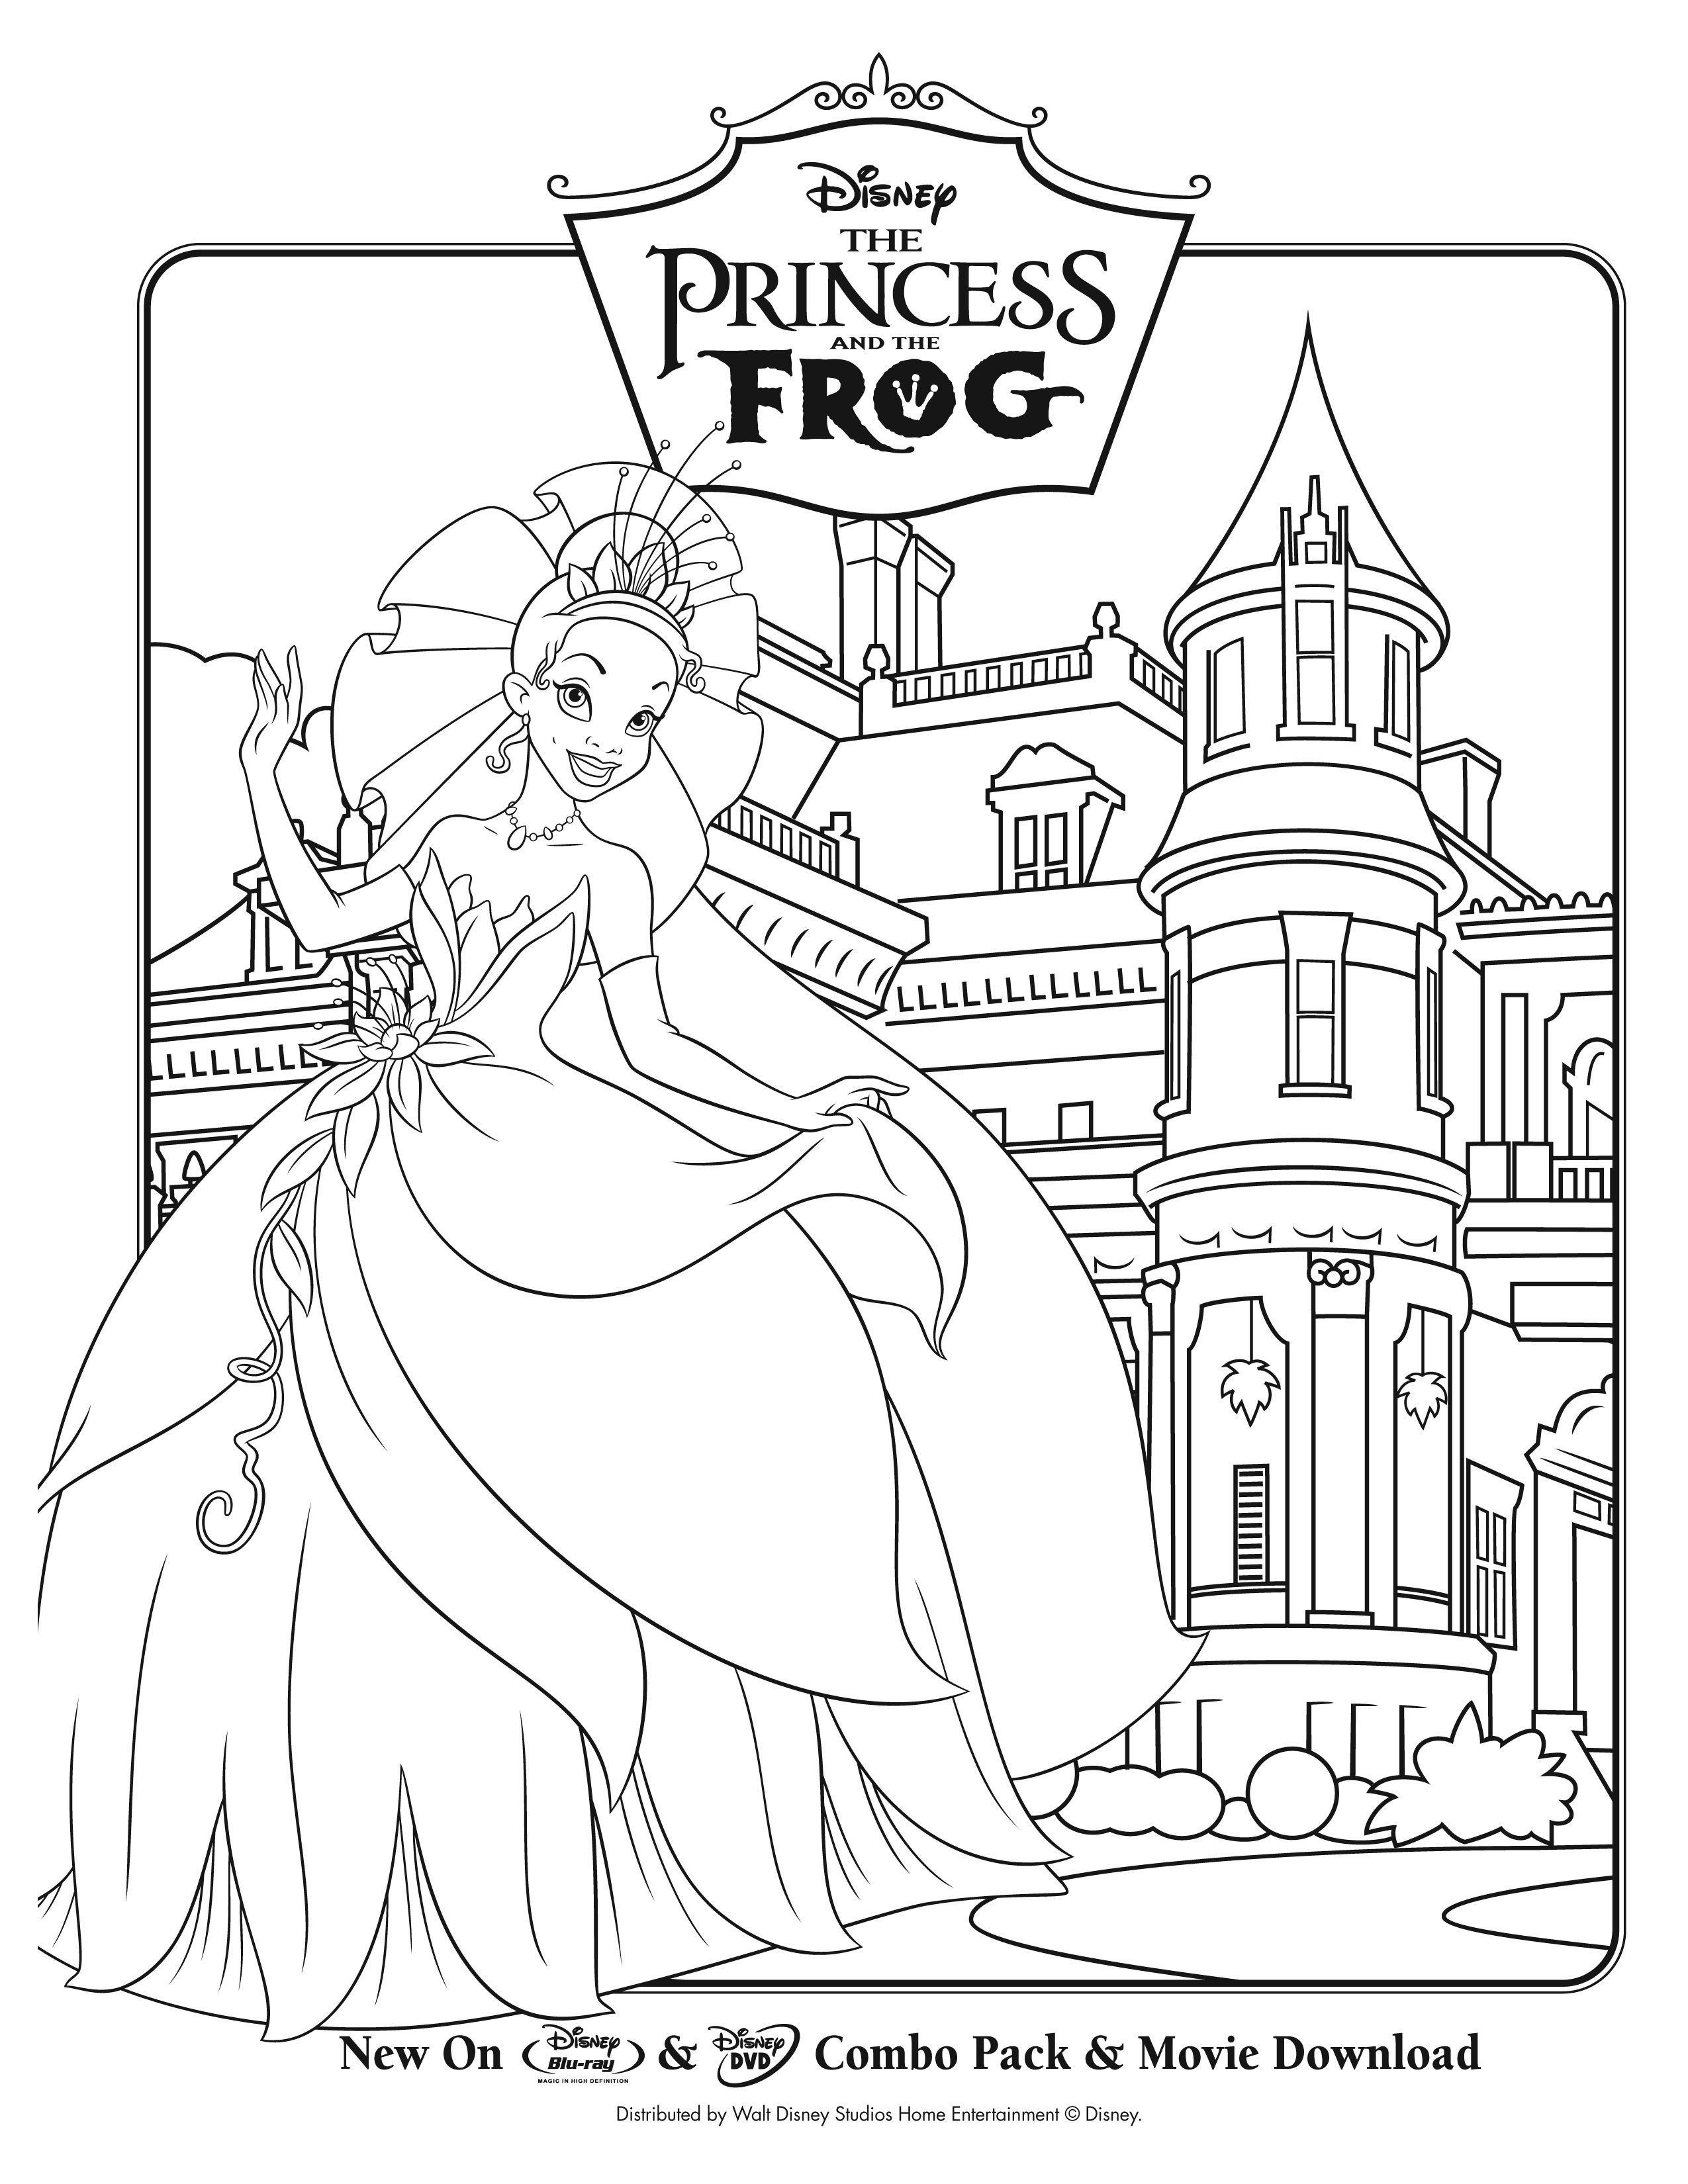 Princess story coloring pages